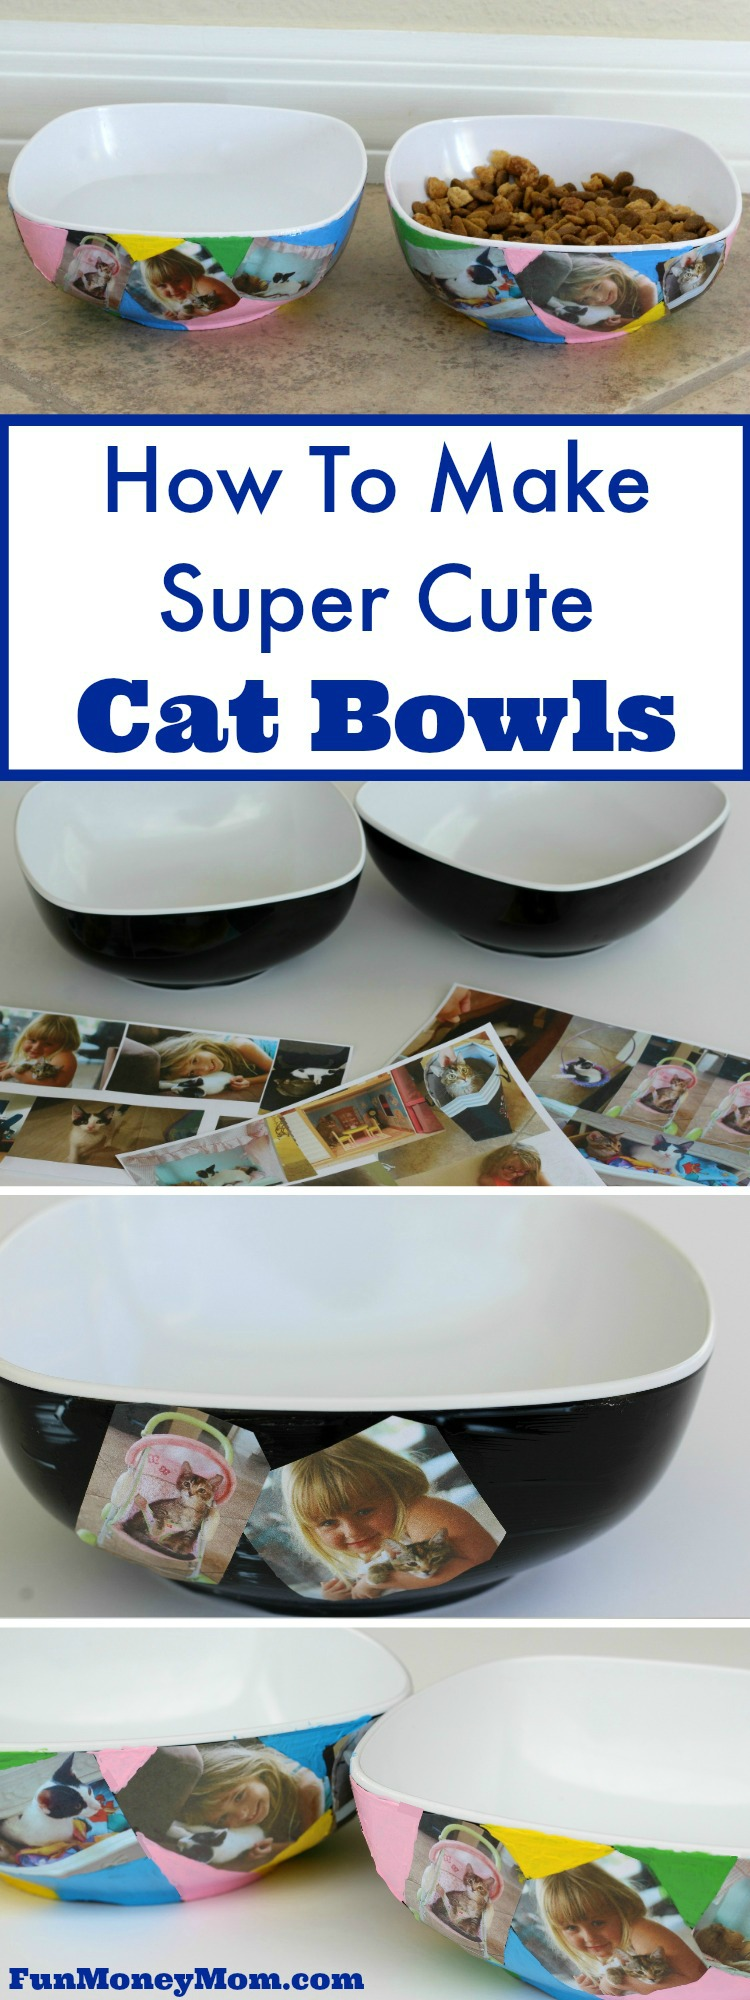 Looking for some fun crafts for kids this summer? If you have pets, your kids will love making these super cute cat bowls for their favorite furry friends.